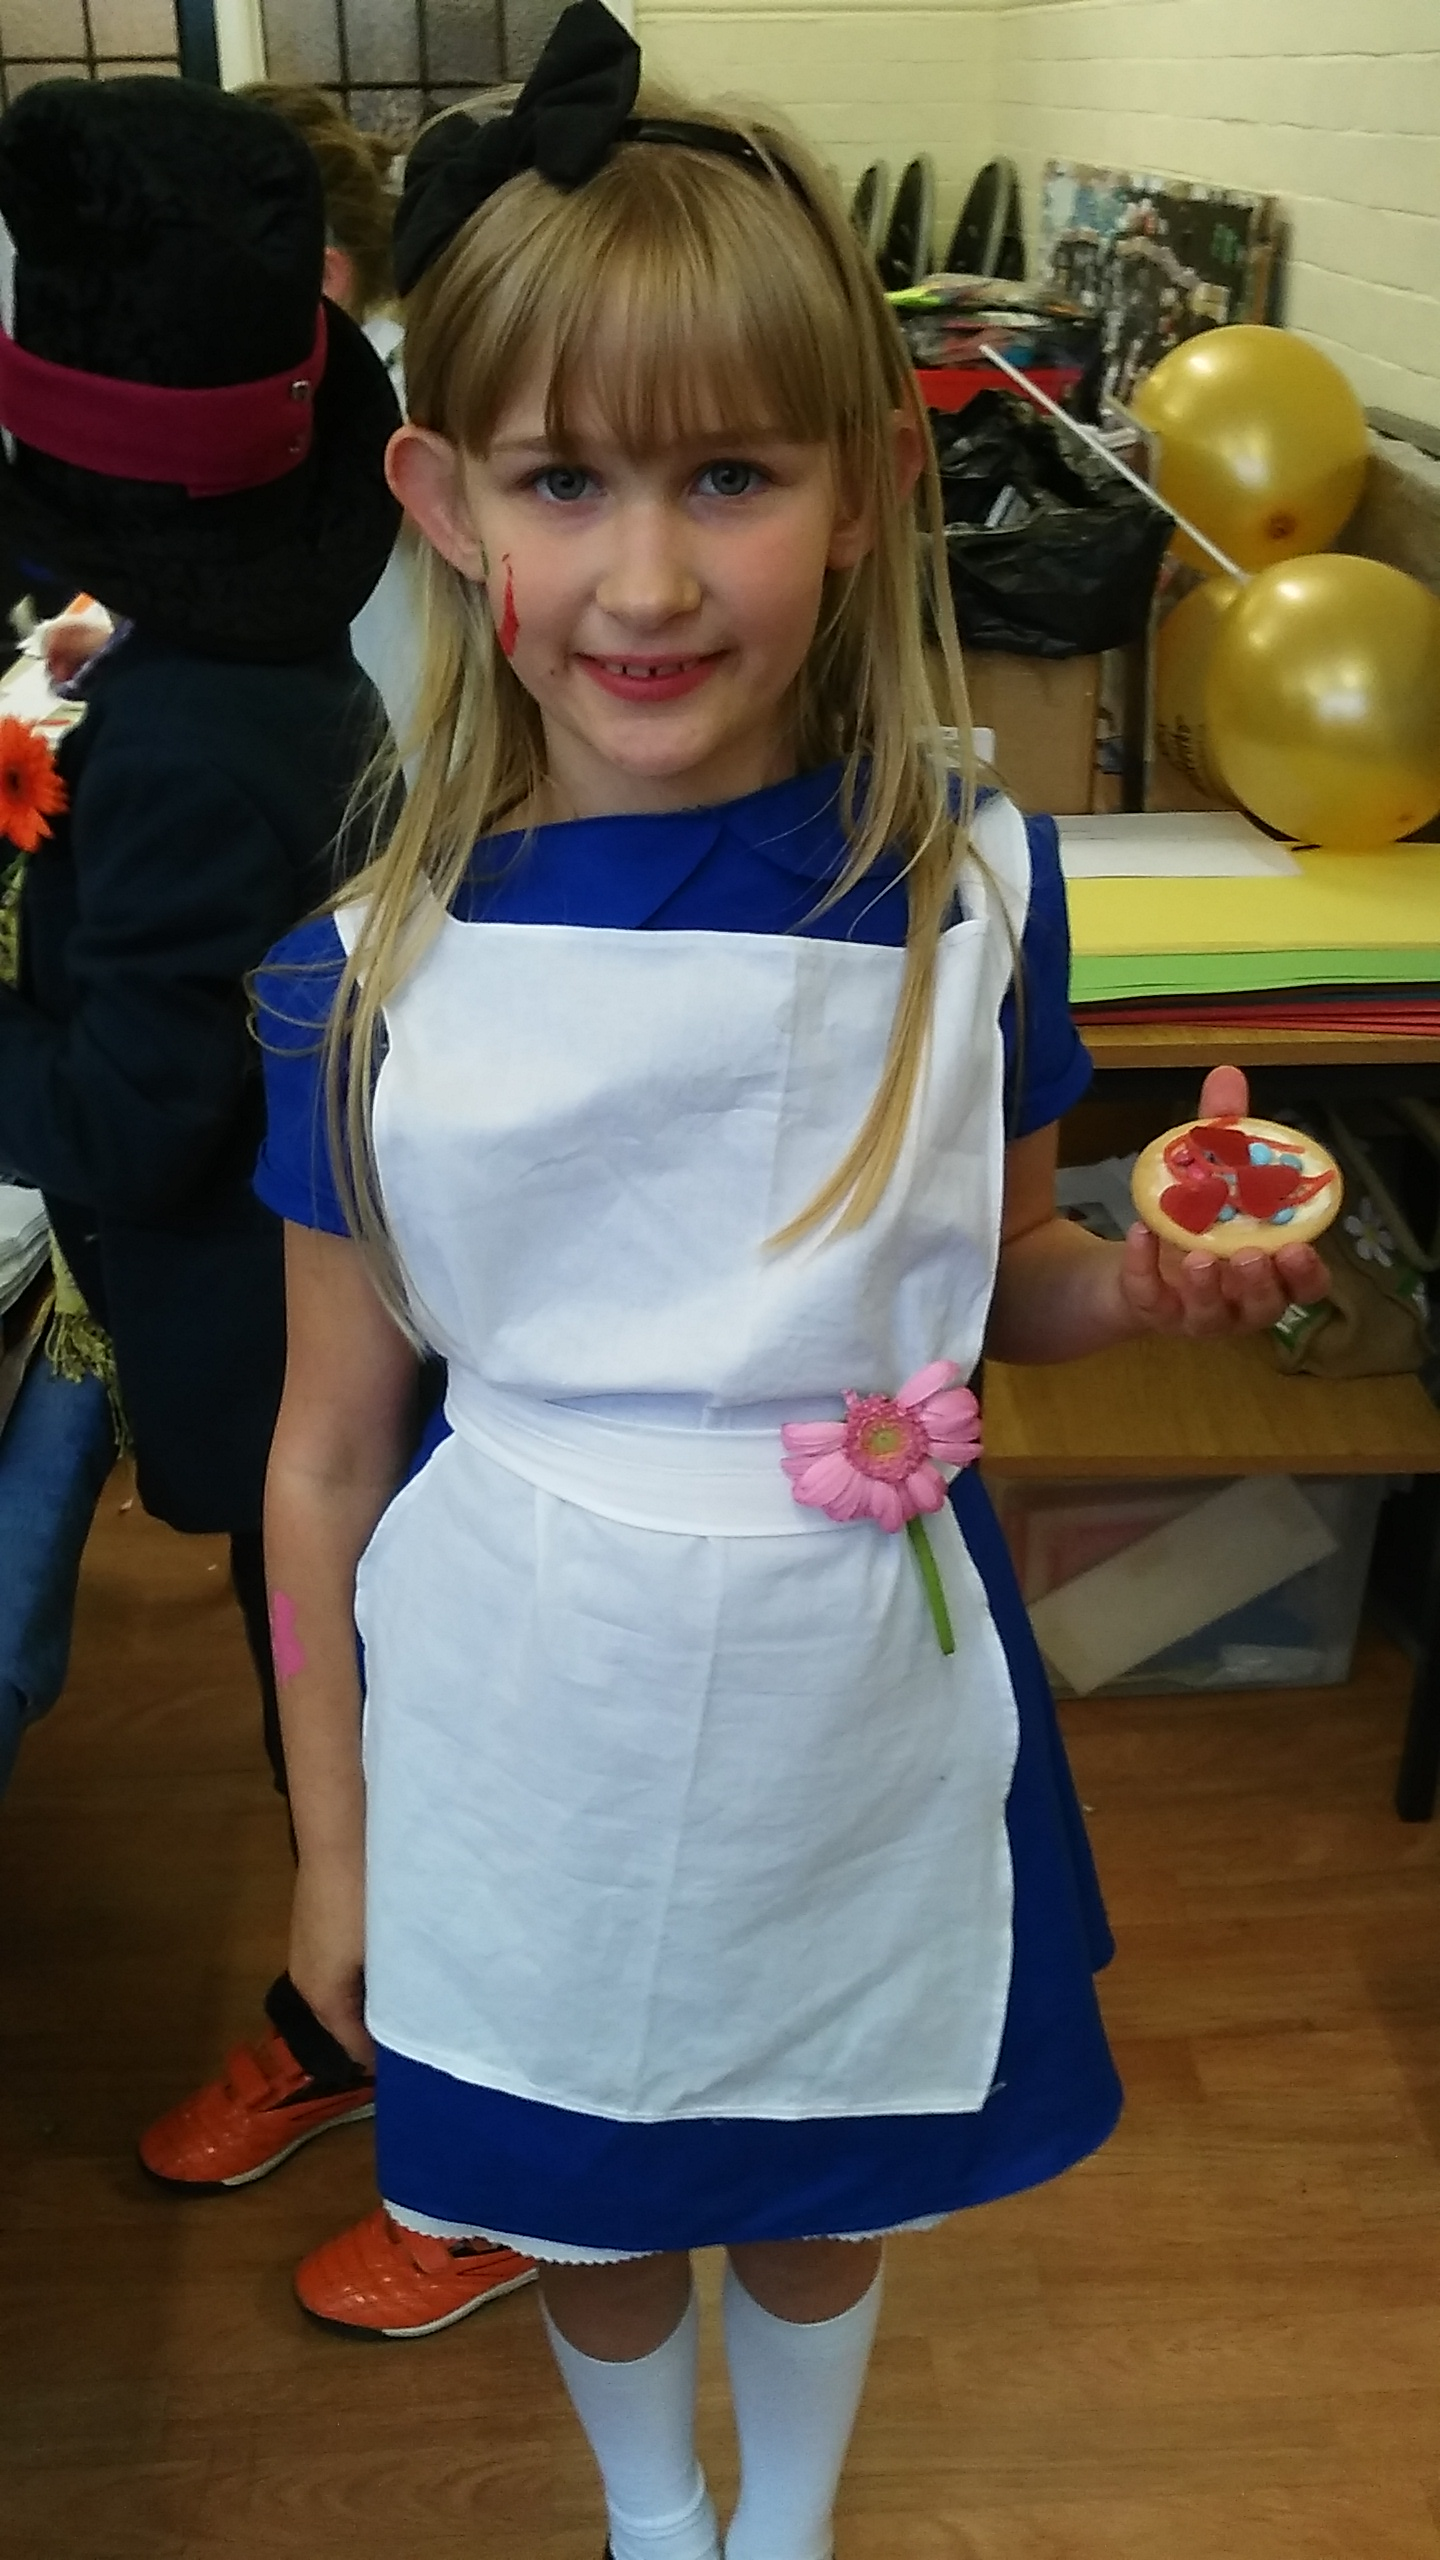 Young girl holding a decorated biscuit whilst dressed as Alice in Wonderland.